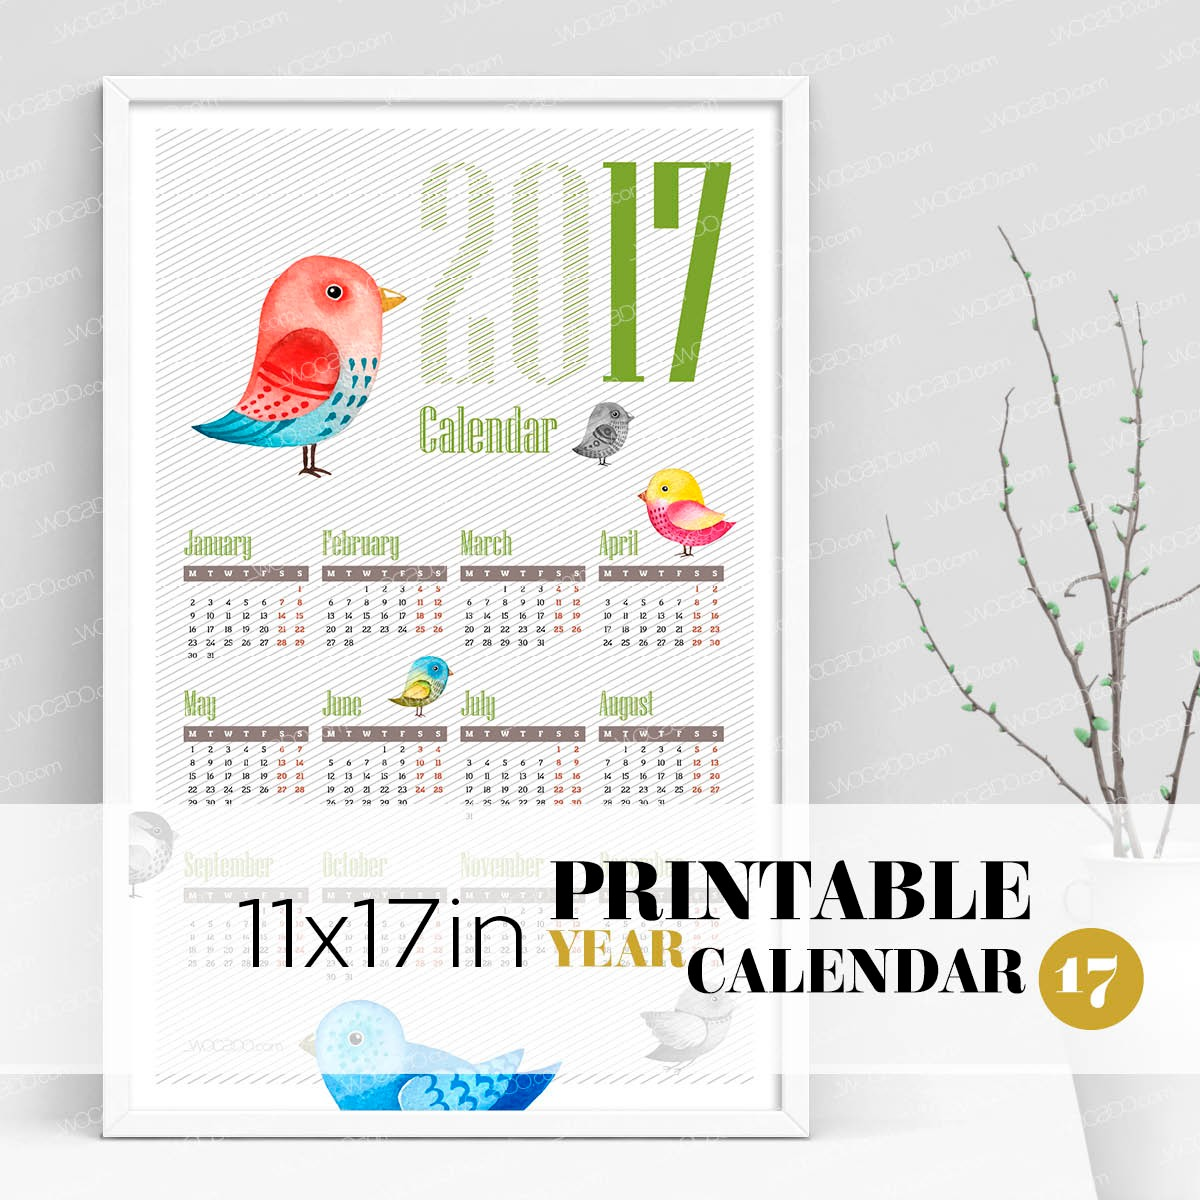 Birds & Birdies – Full Year Printable Calendar 2017 - 11x17 Poster, Colorful Painted Birds